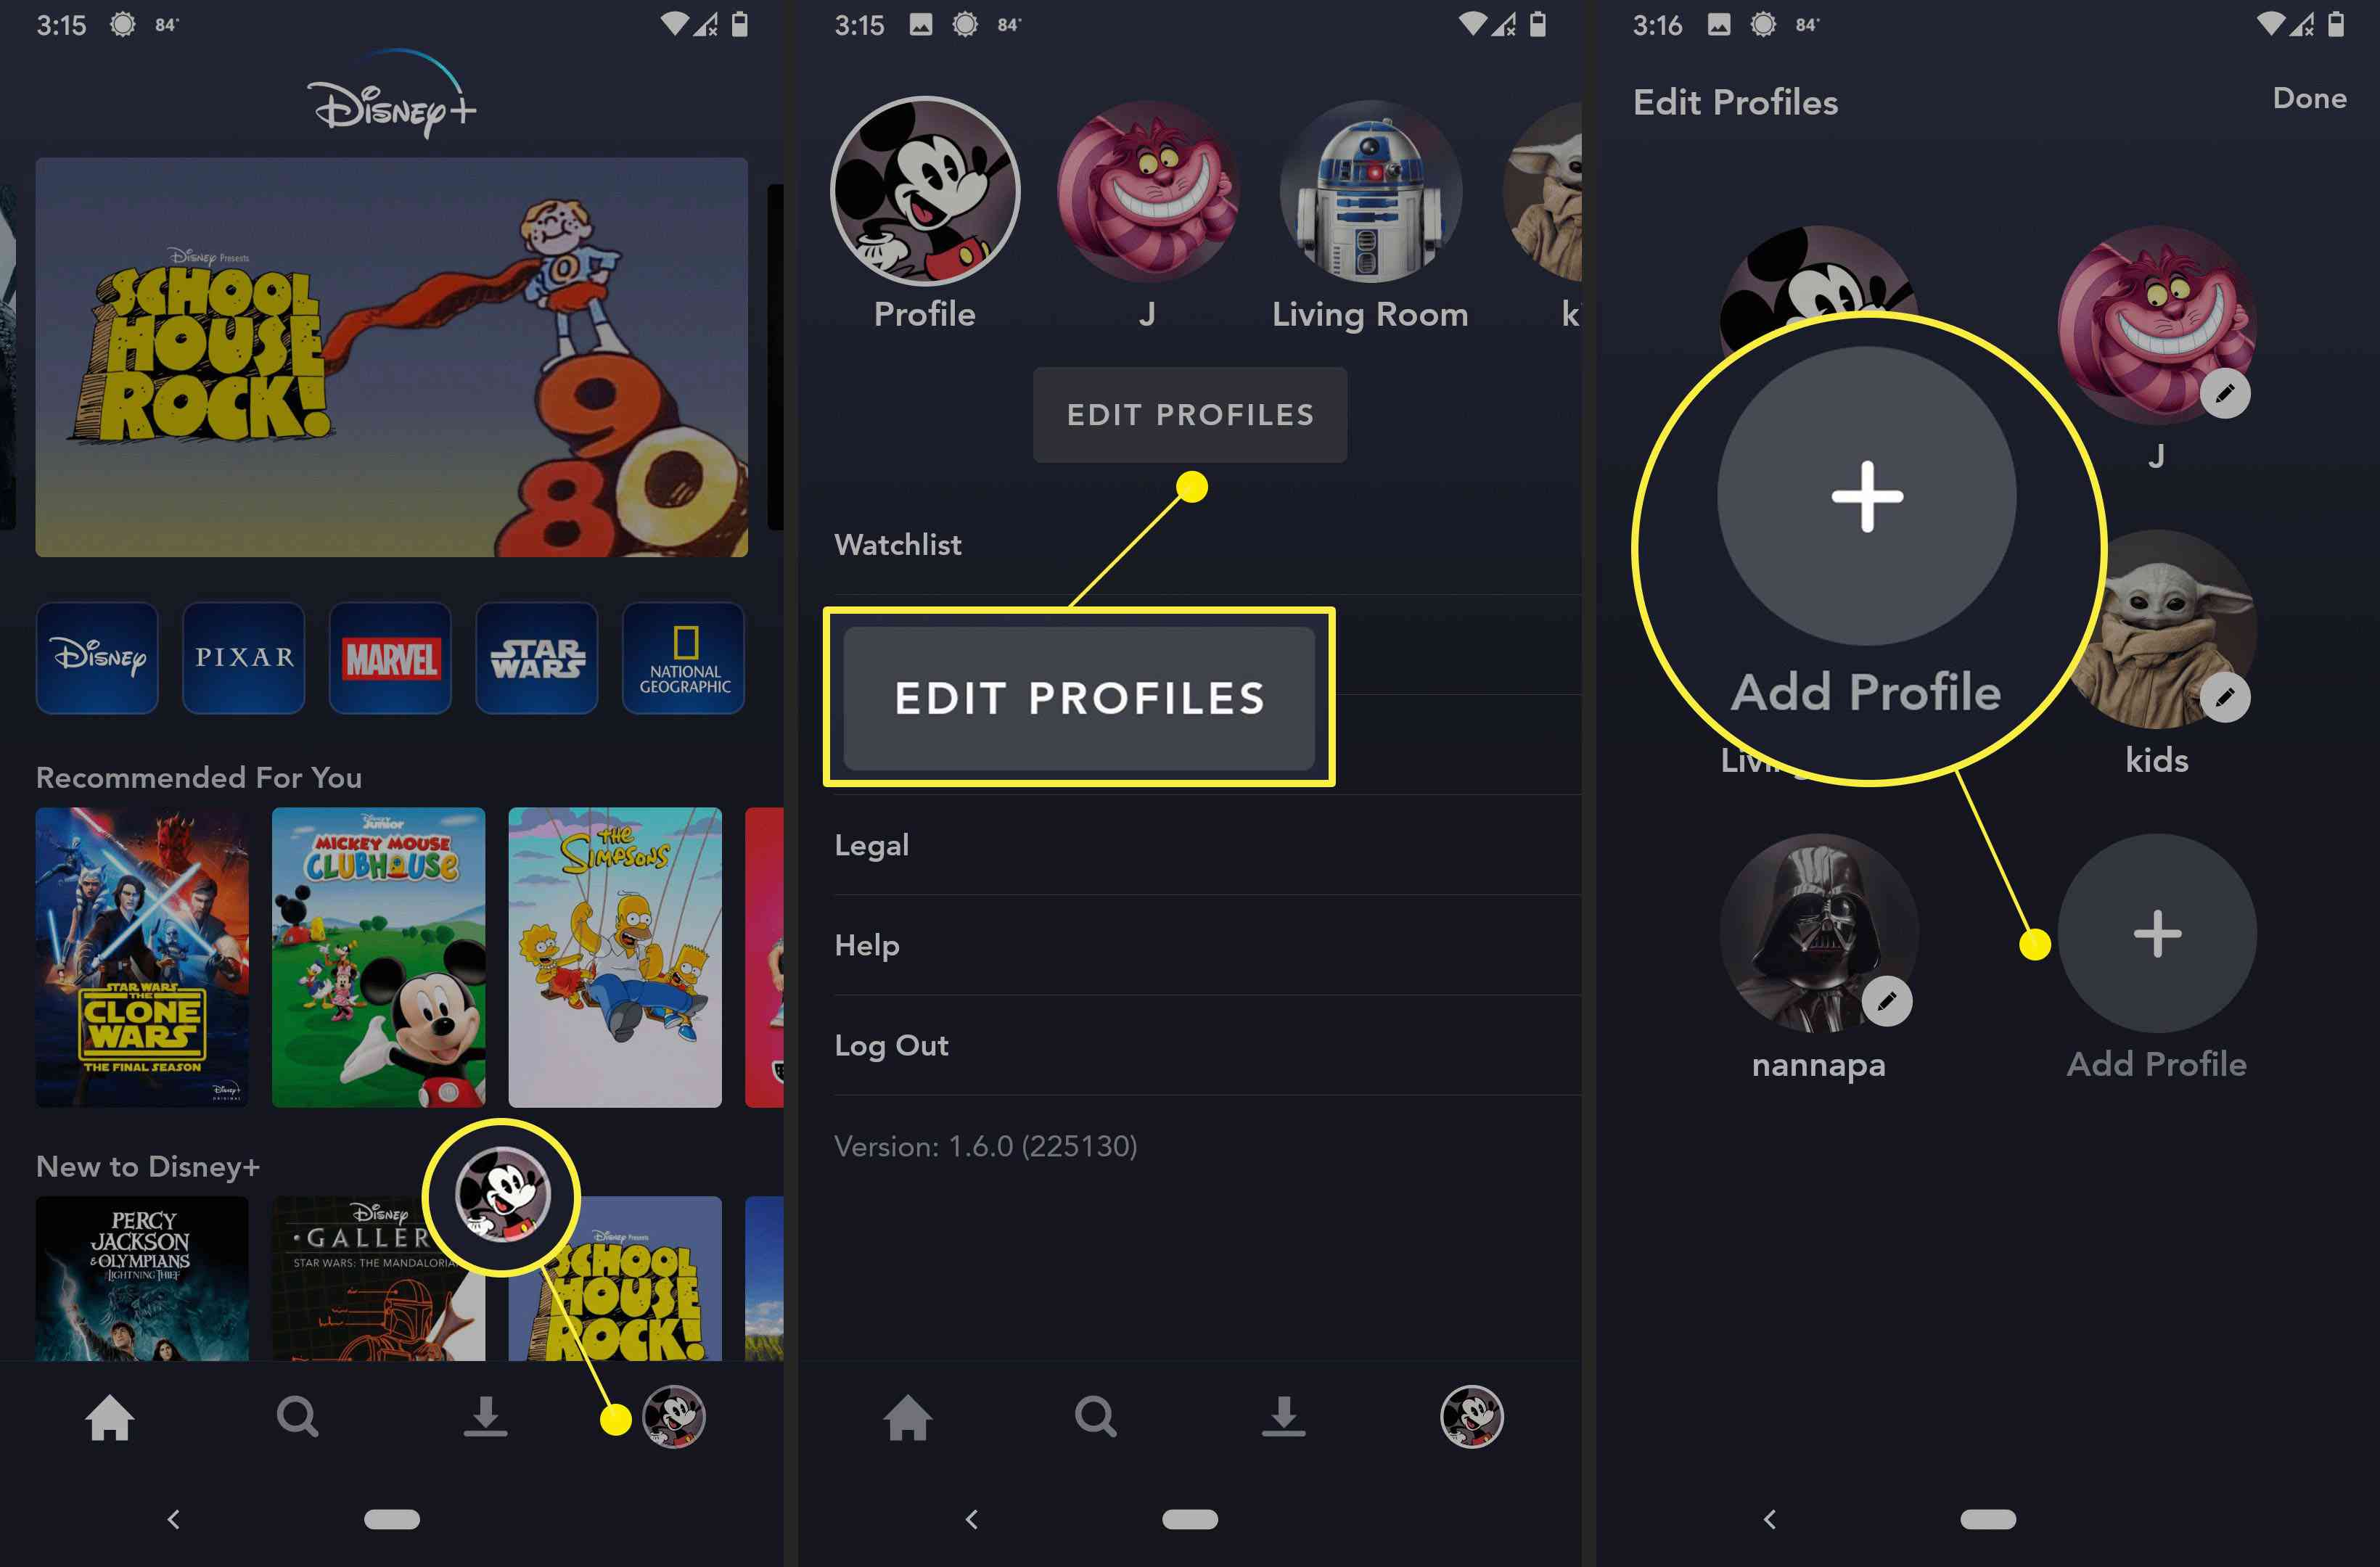 How to find profiles on the Disney+ App.